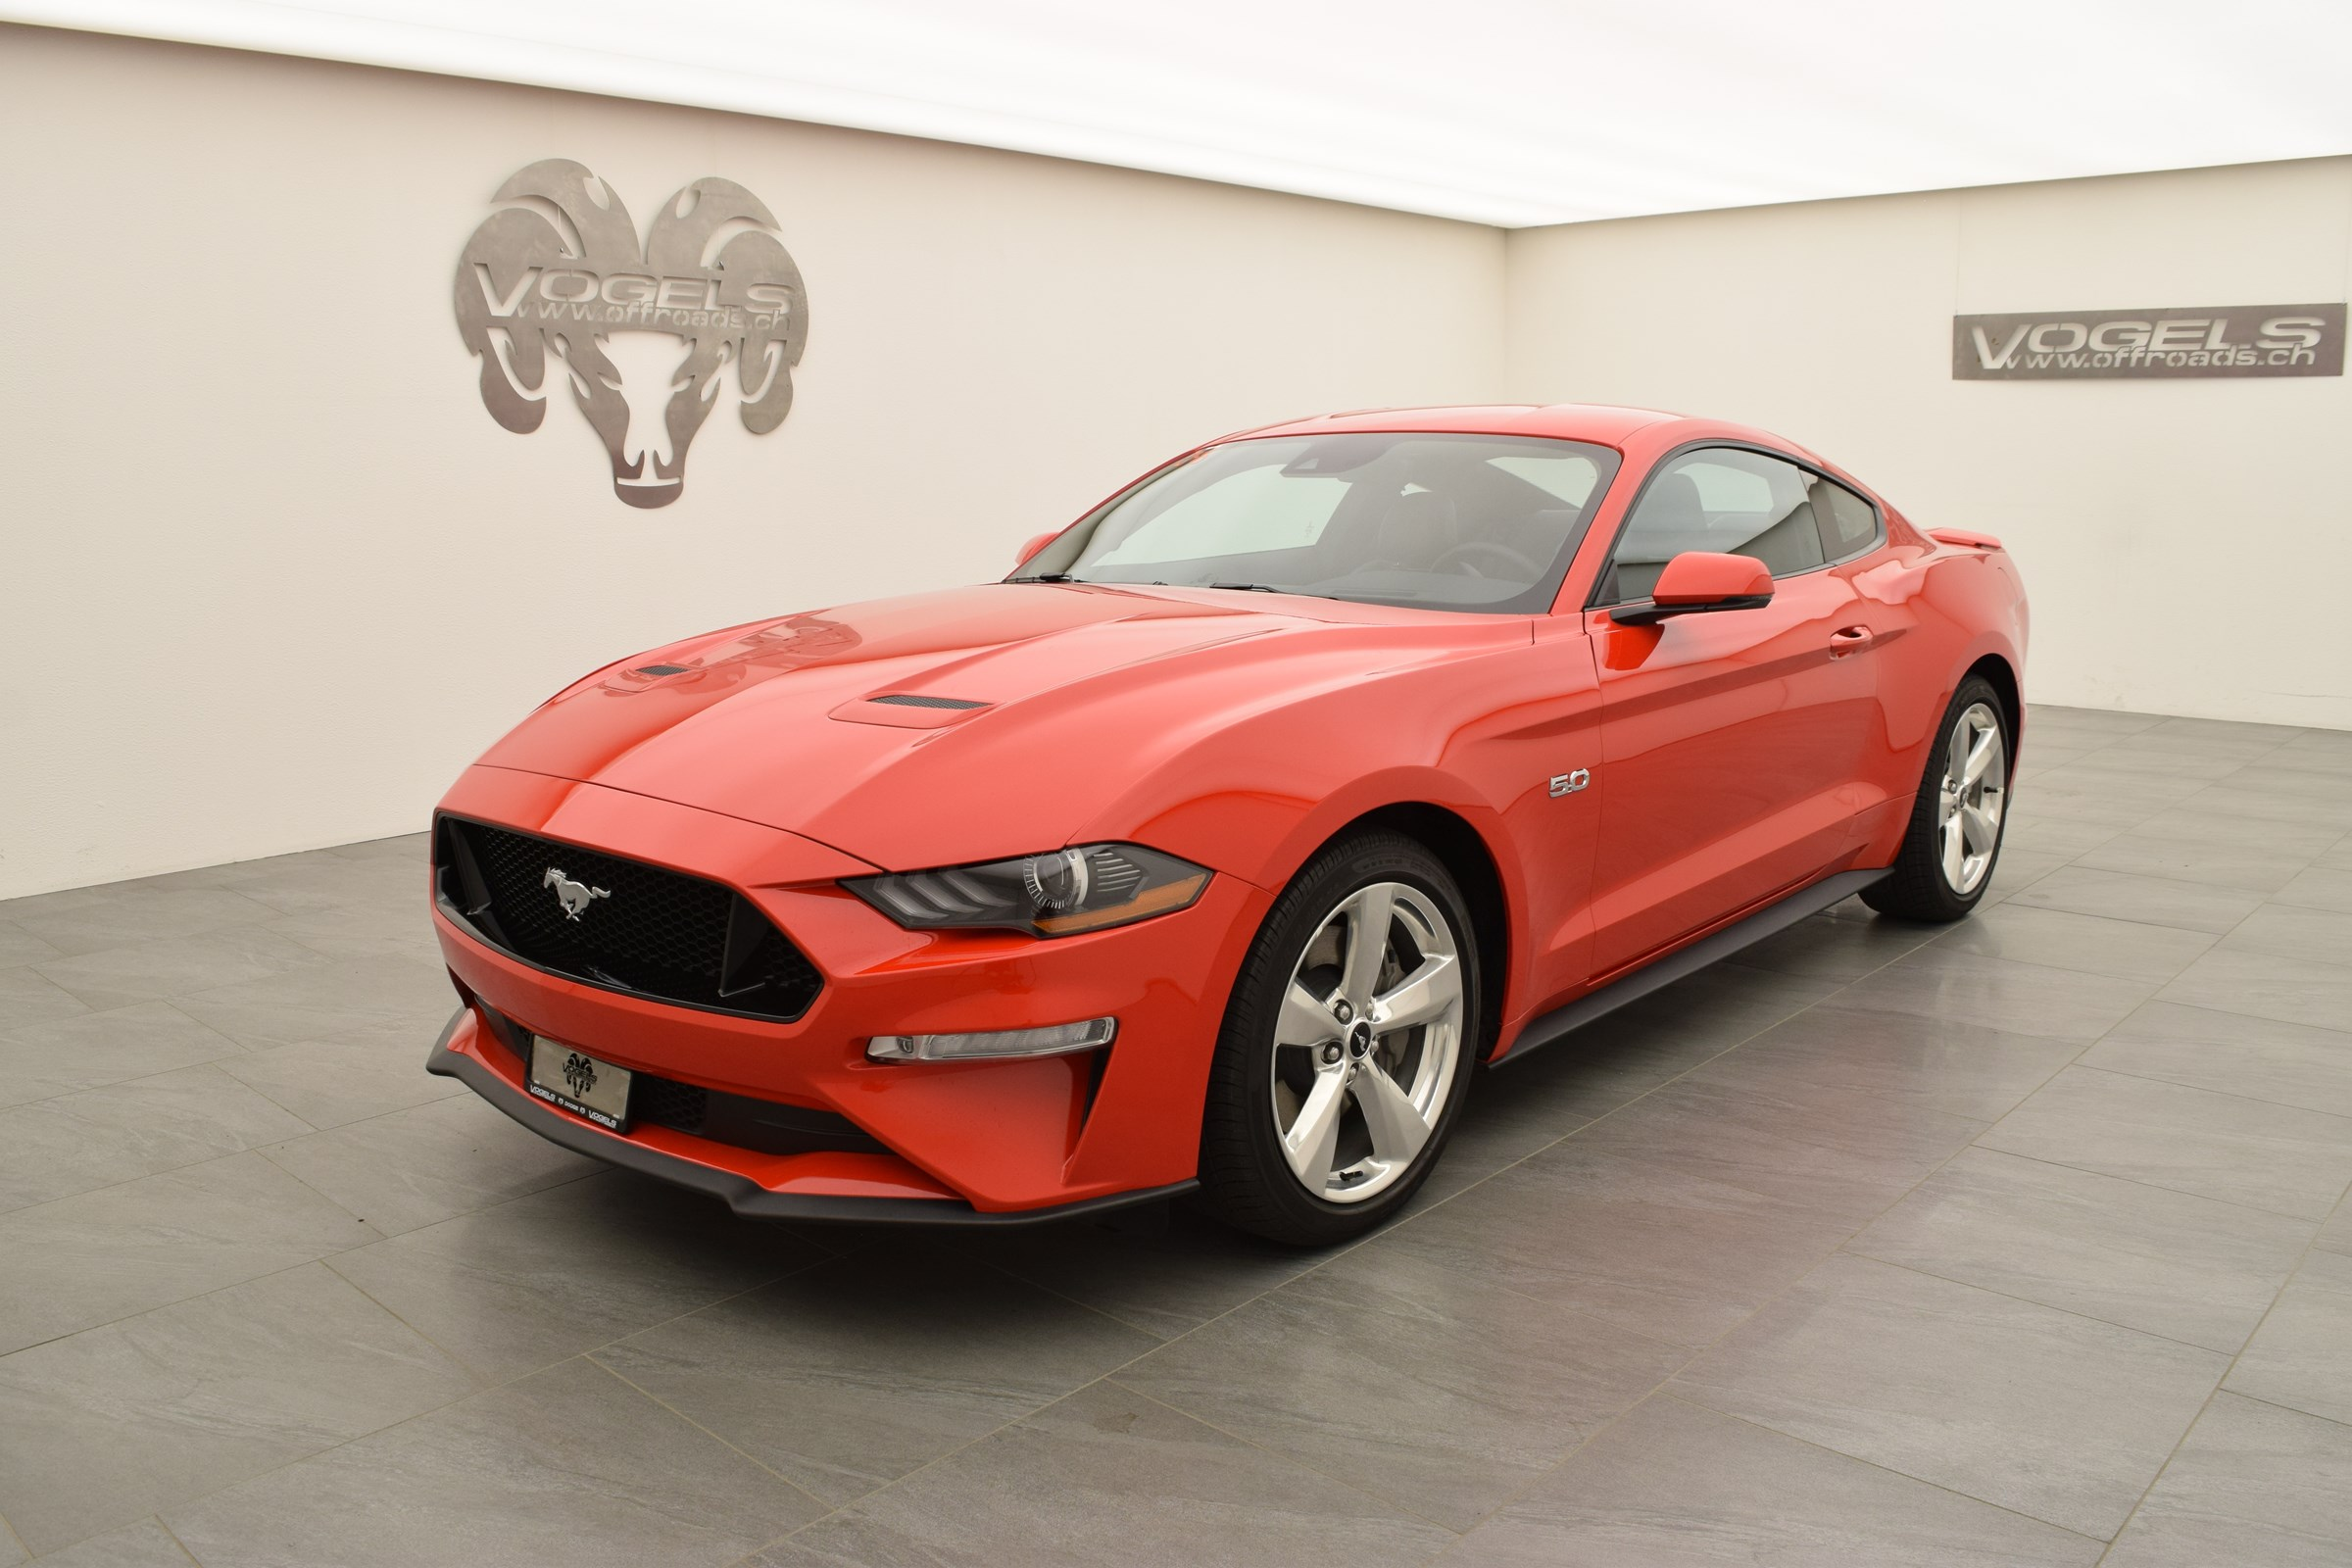 Buy New Car Coupe Ford Mustang 5 0 Gt Fastback 1 Km At 57800 Chf On Carforyou Ch